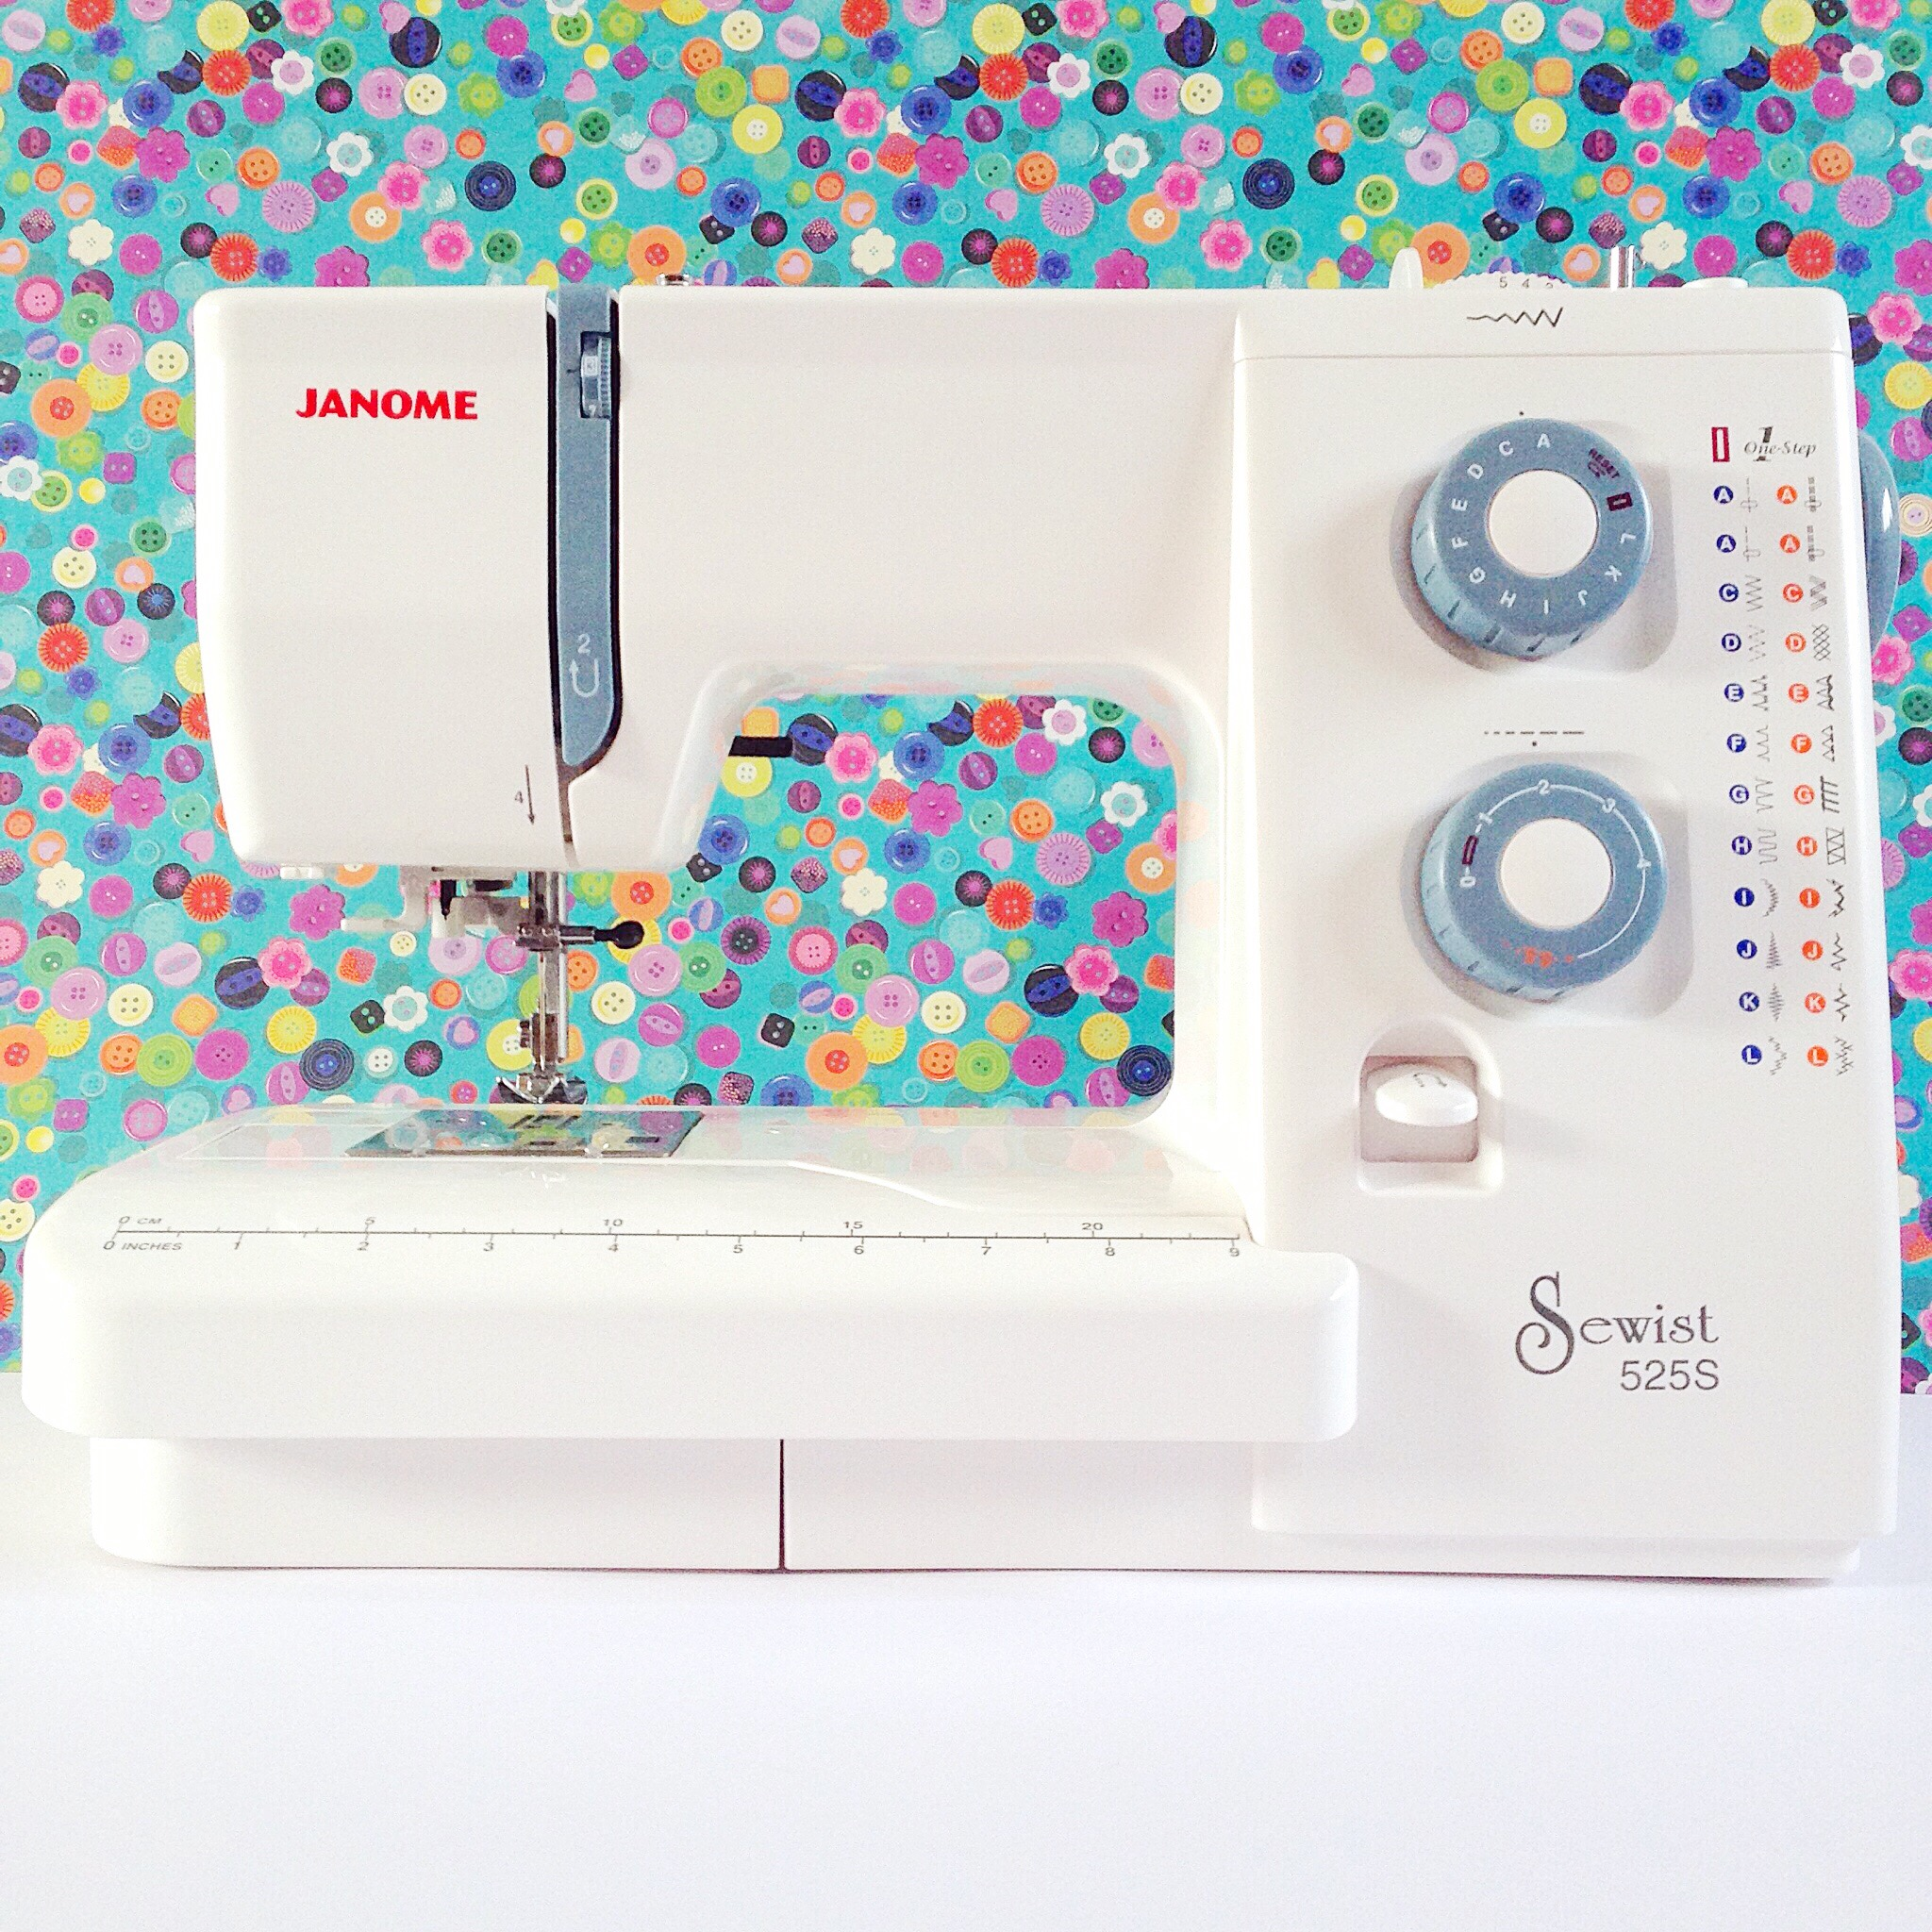 Janome Sewist 525S review | Hello! Hooray!